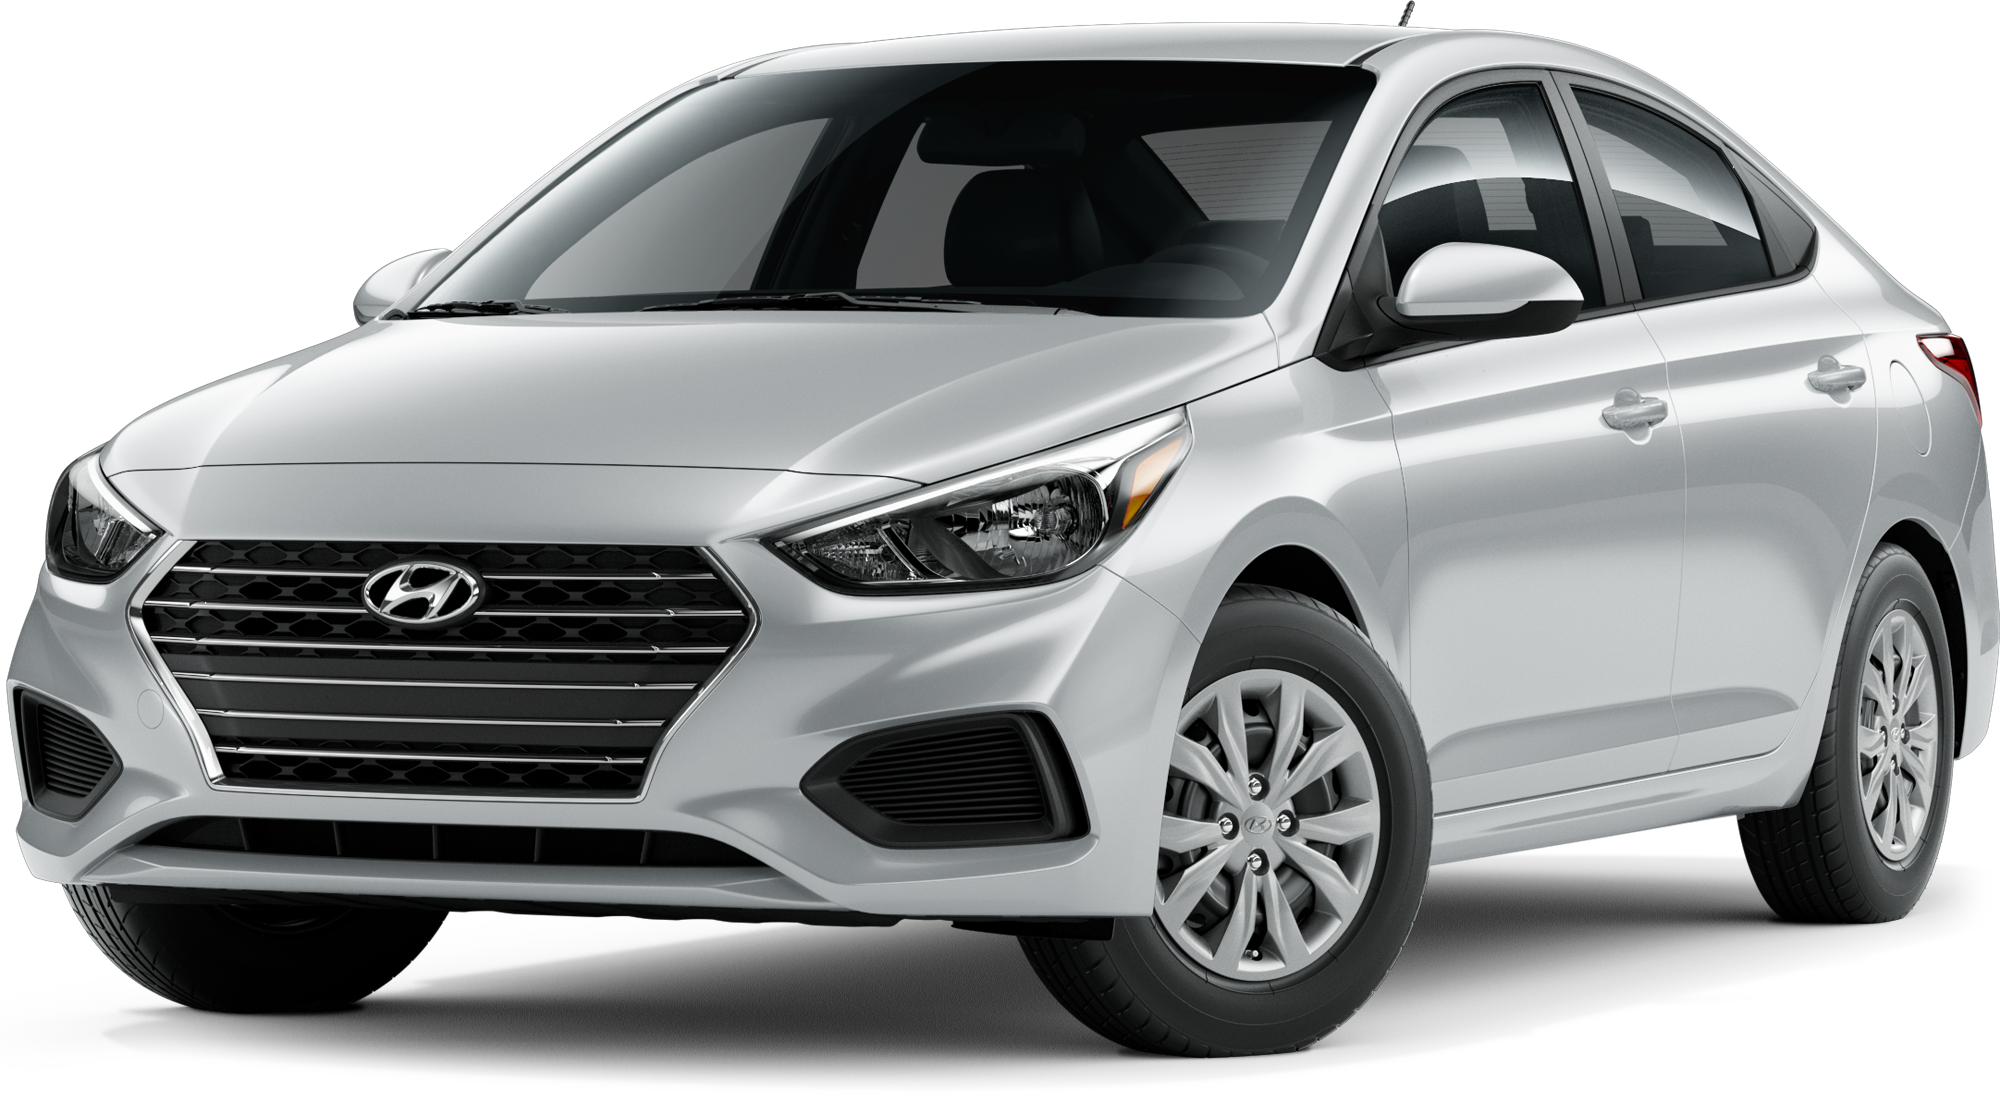 2021 Hyundai Accent Incentives, Specials & Offers in ...